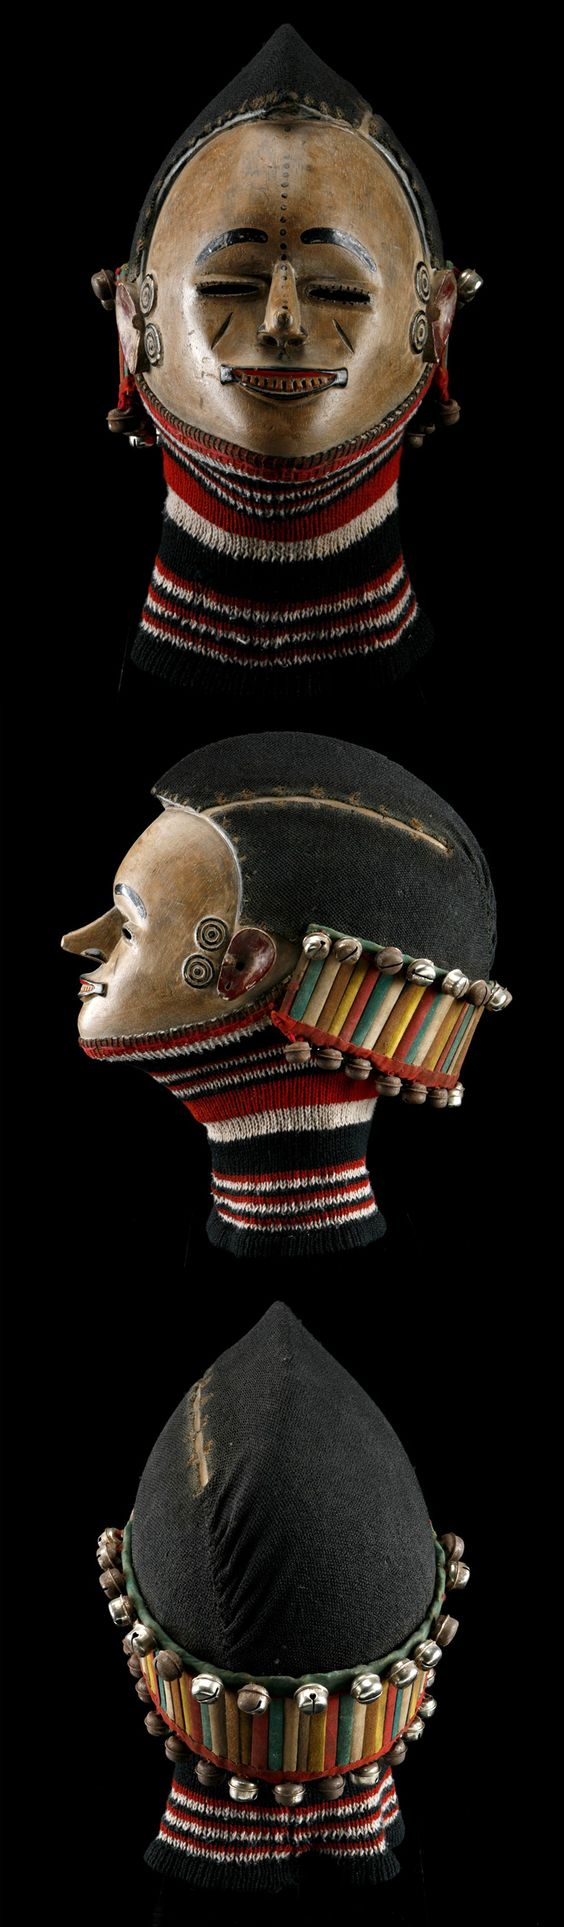 Africa | Mask from the Igbo people of Nigeria | Wood, pigment, metal, fabric, natural fiber